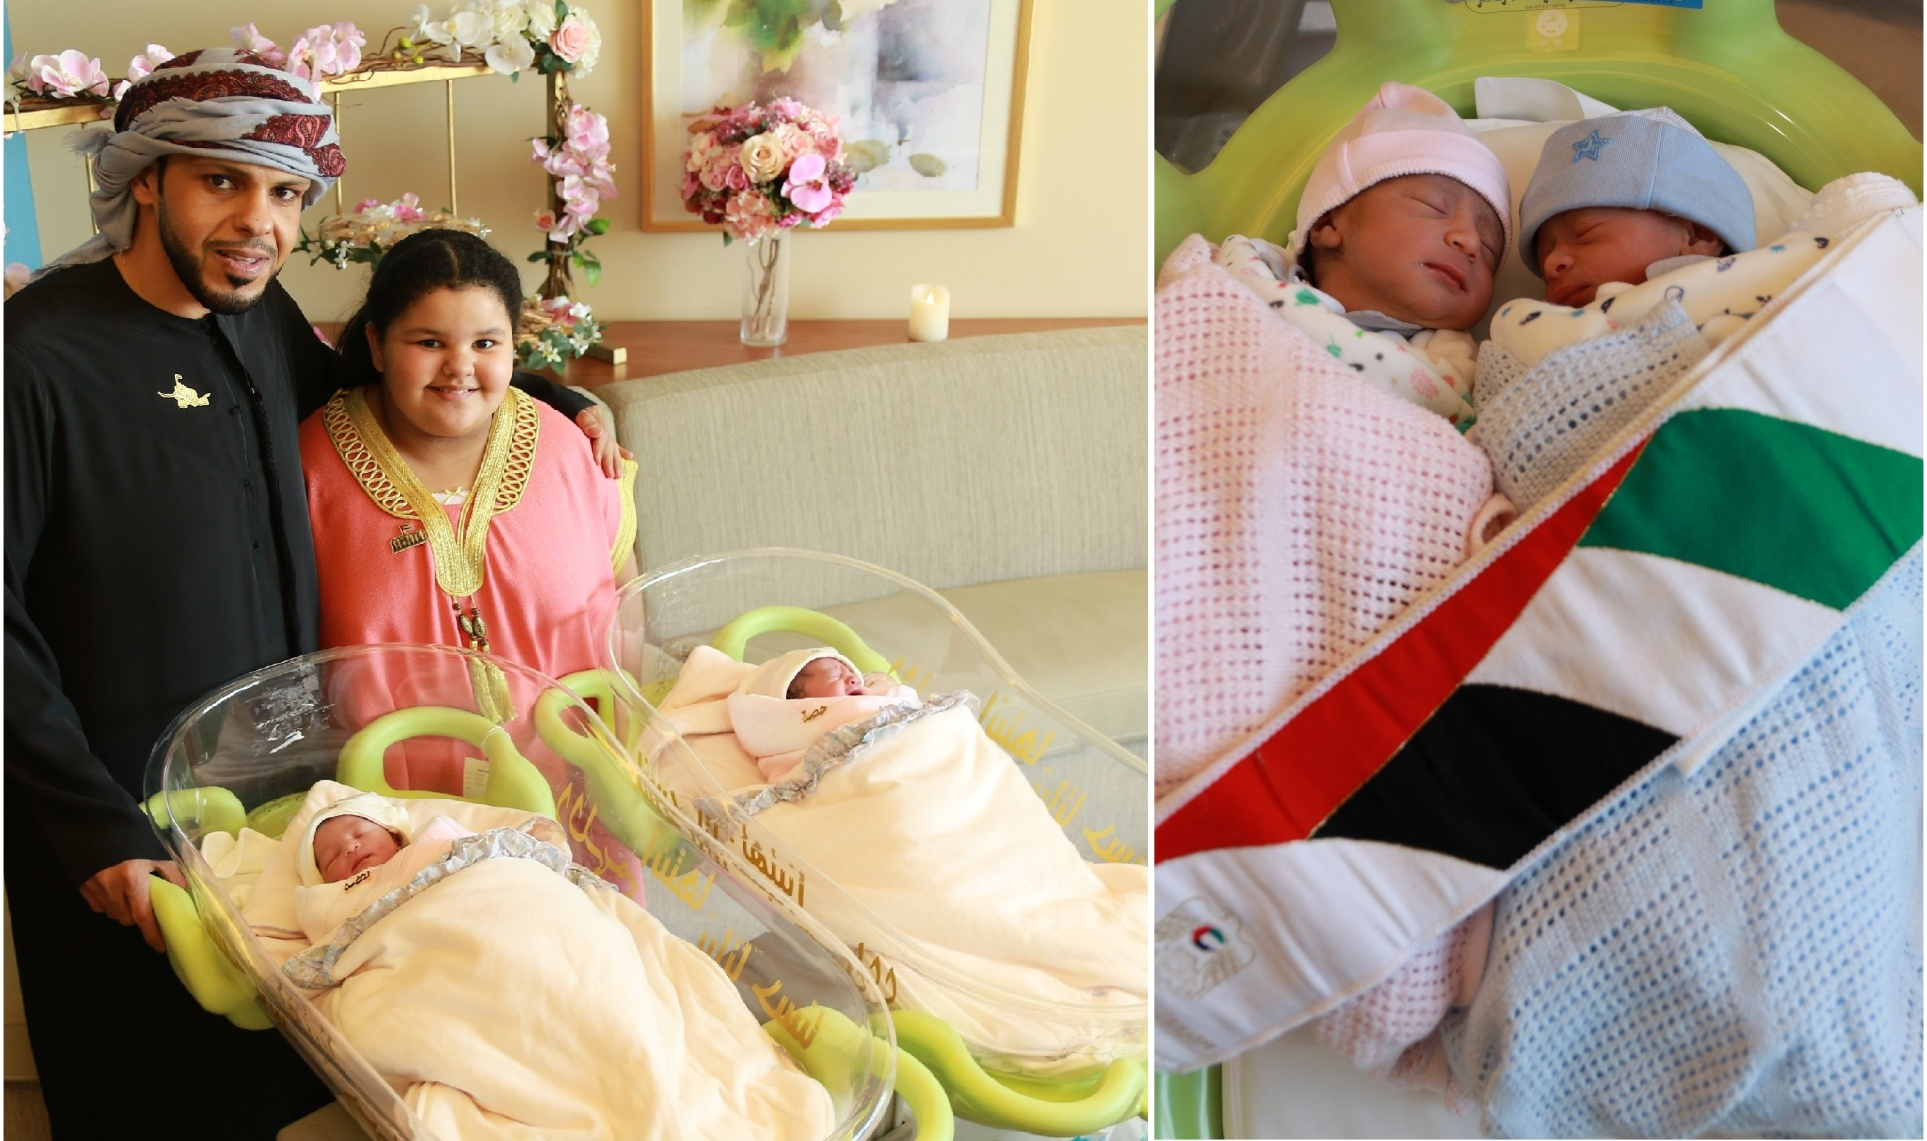 Two sets of twins were born in the same hospital in Abu Dhabi in the hours of December 2, 2017, the